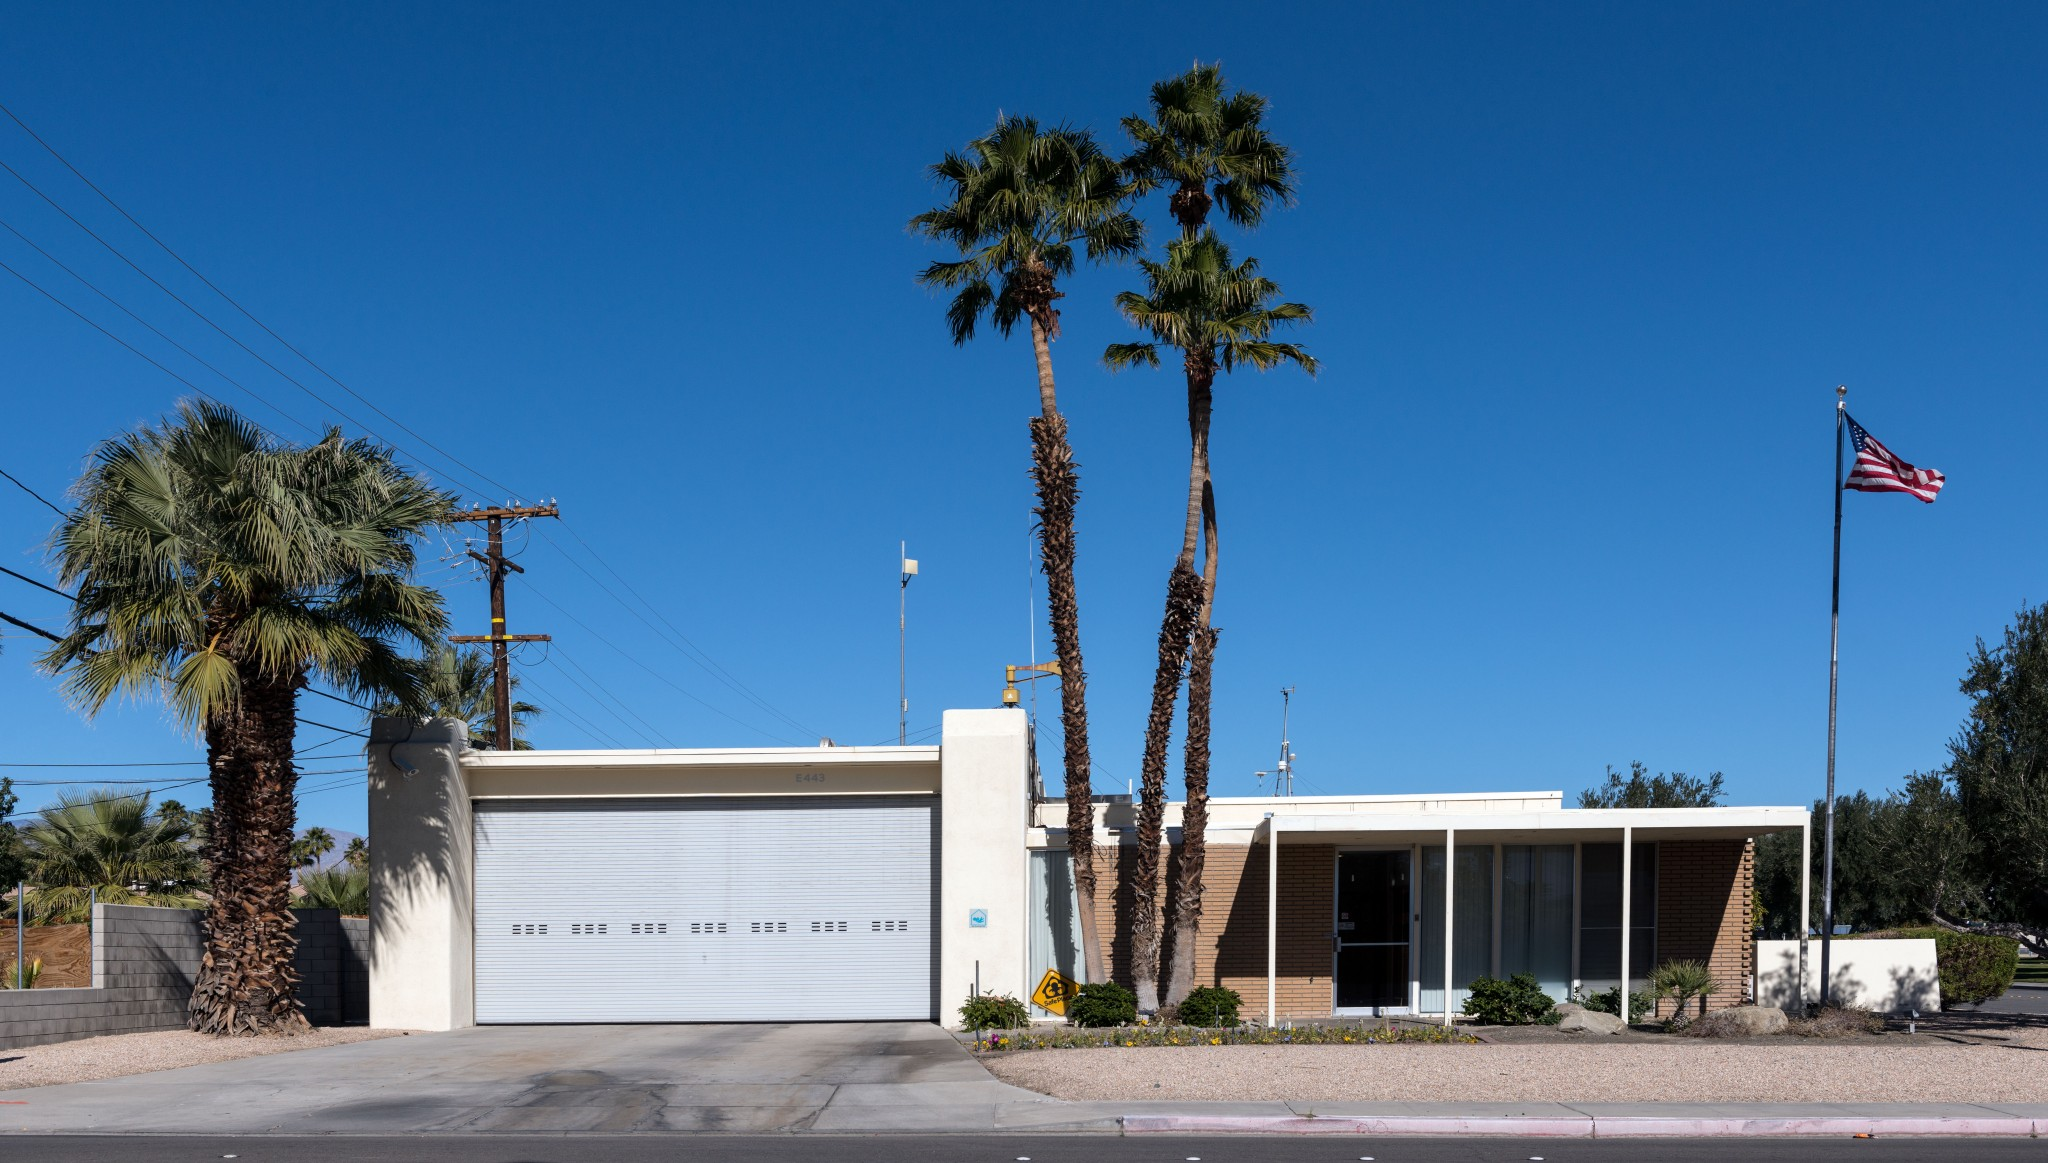 Kaptur designed Fire Station 3 in Palm Springs. Photography by Carol M. Highsmith [Public domain]/Wikimedia Commons